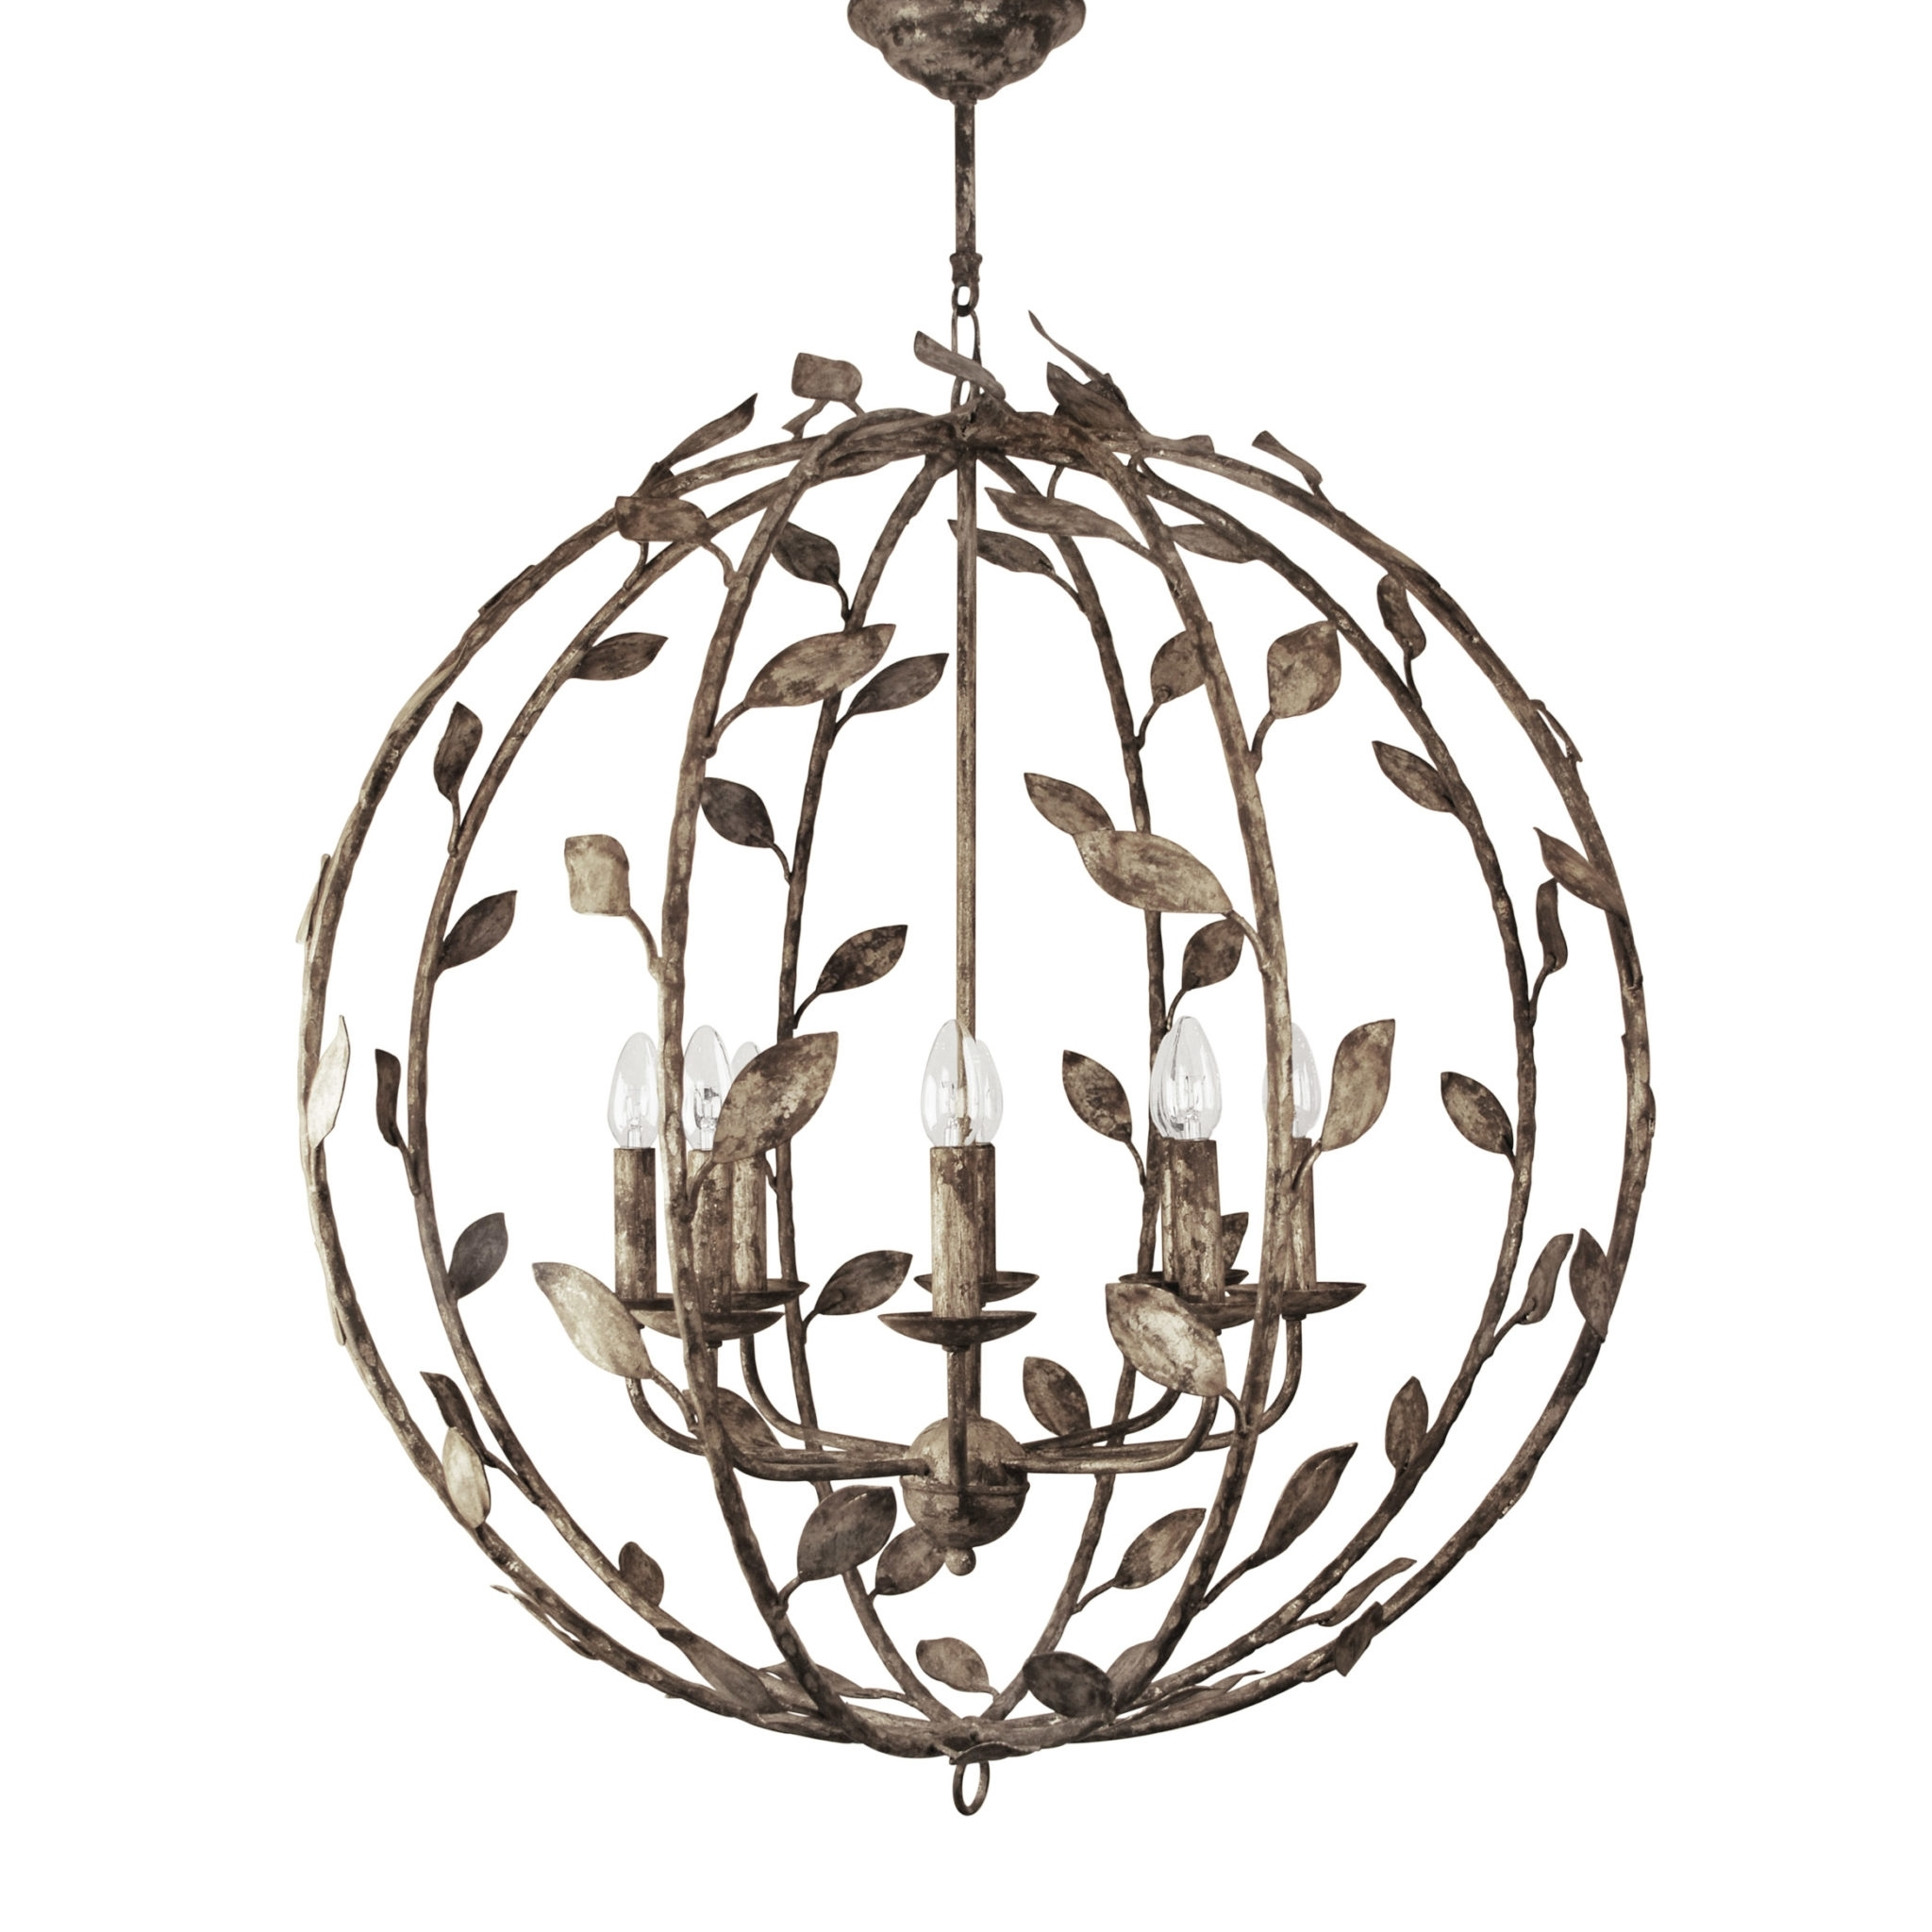 Foliage – Villaverde London With Regard To Most Recent Metal Chandeliers (View 5 of 20)